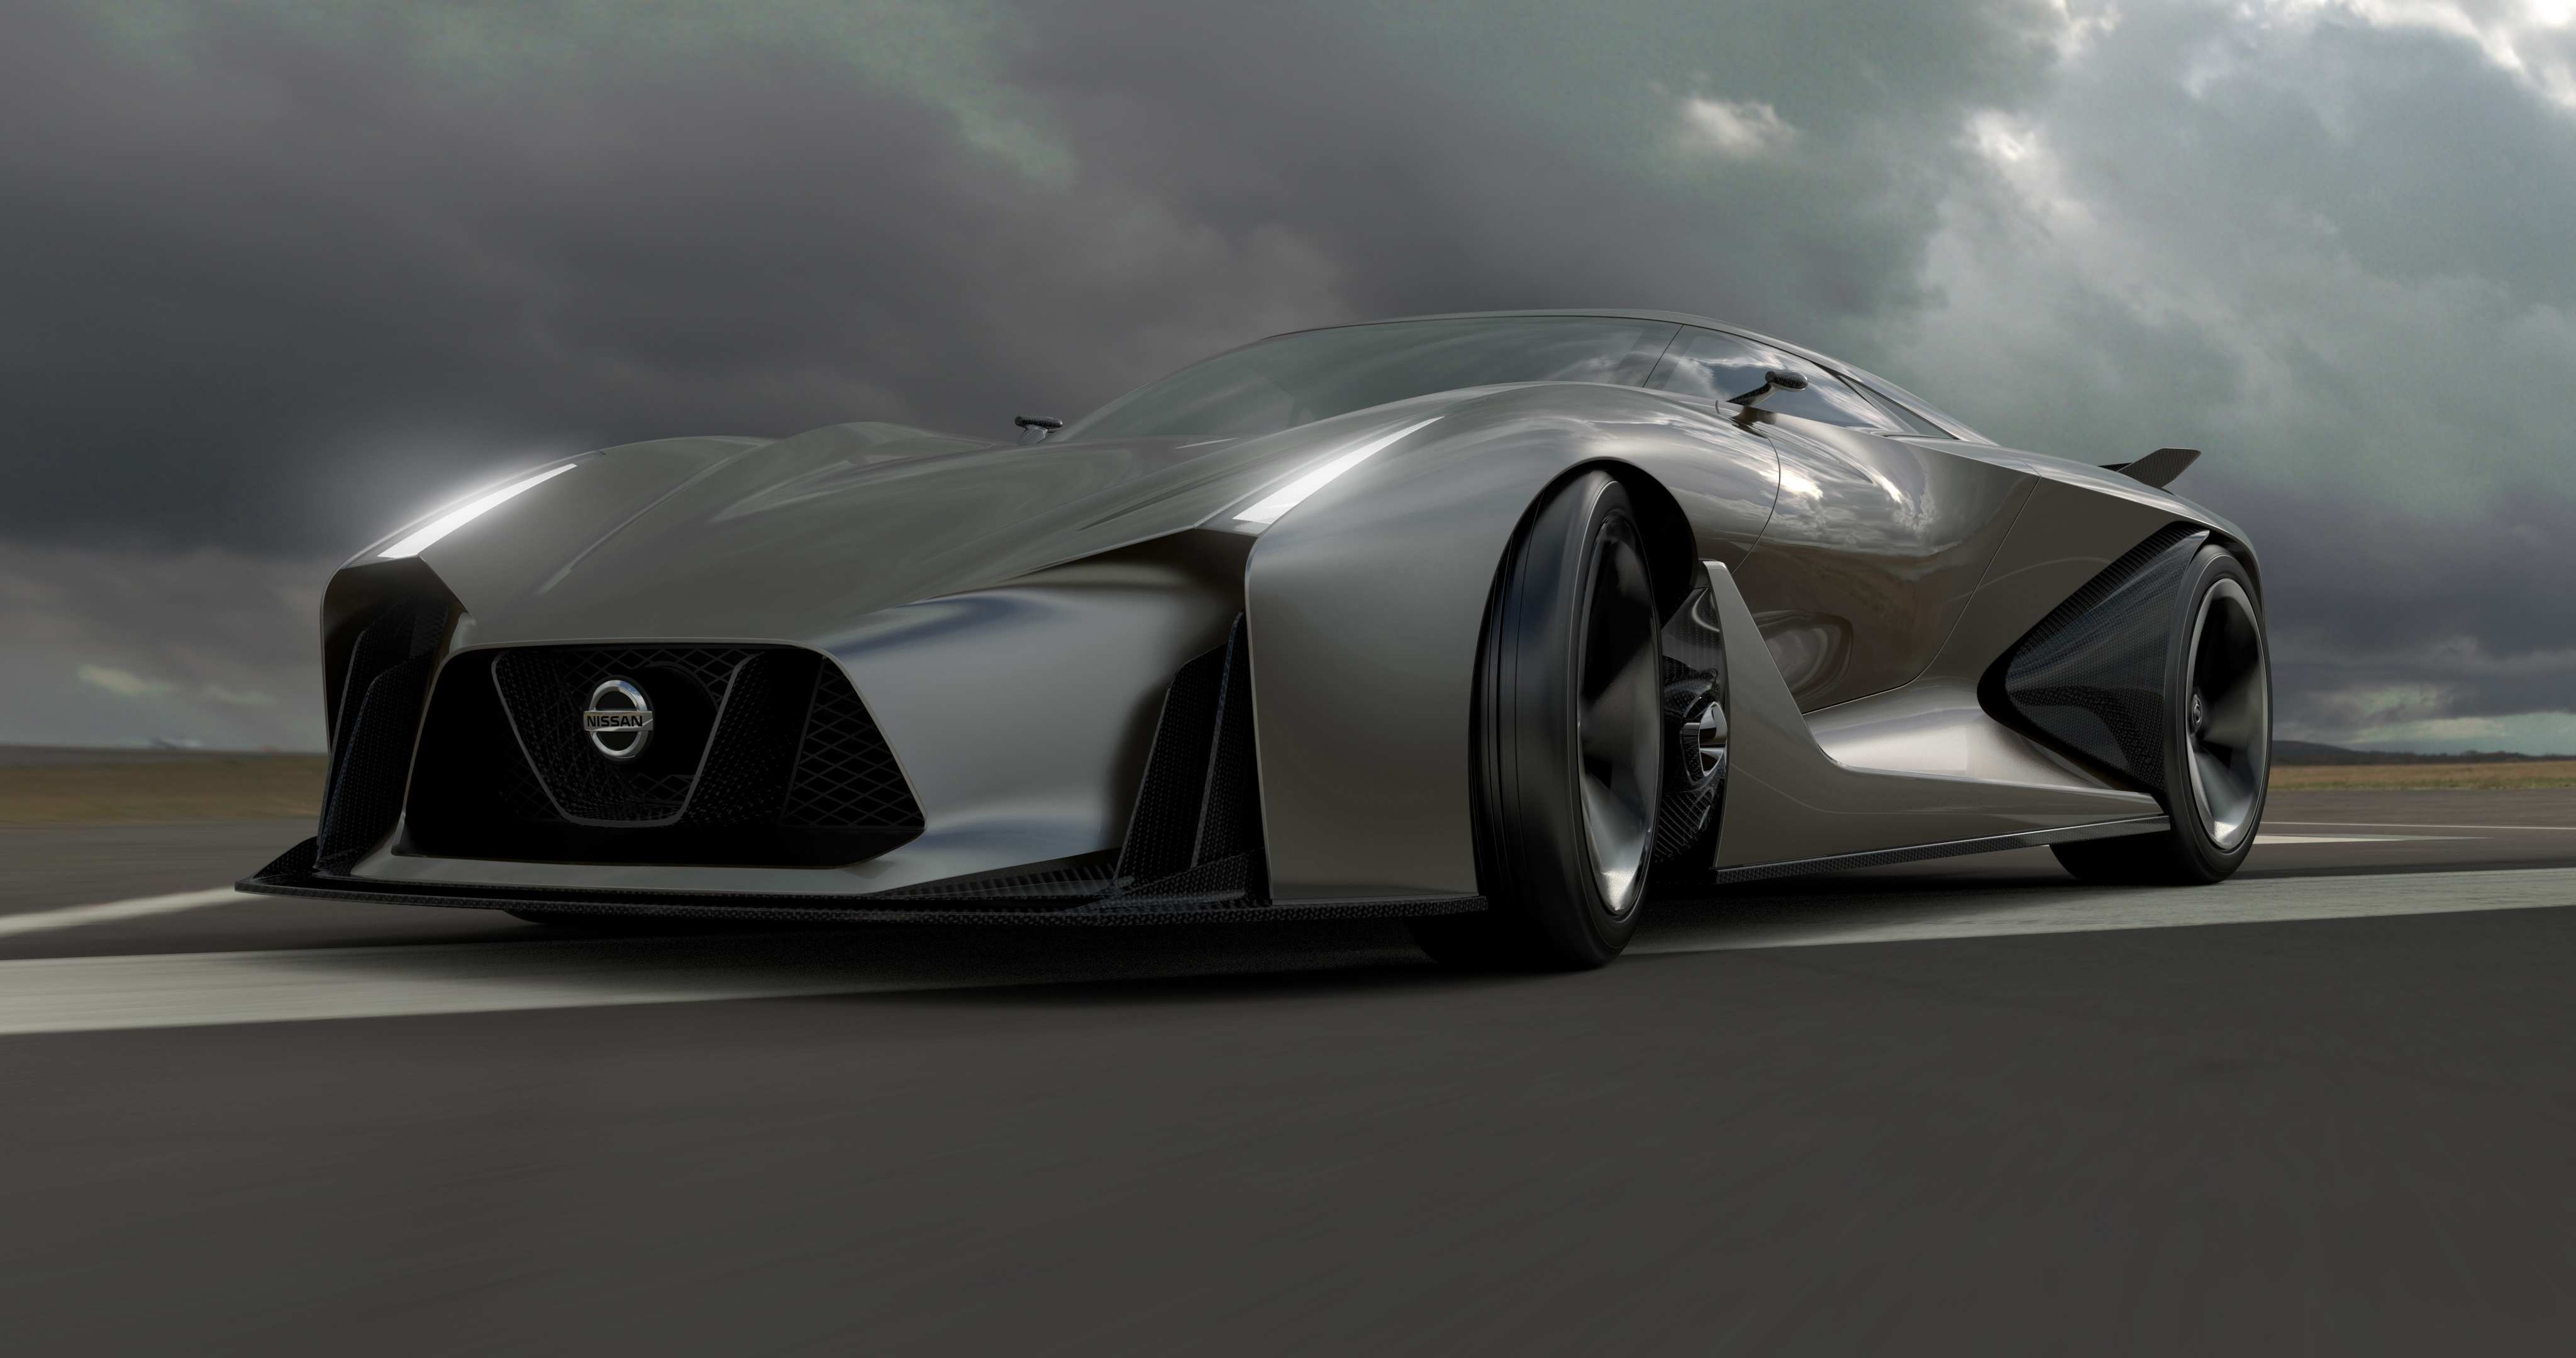 99 New Nissan Concept 2020 Price In India Picture